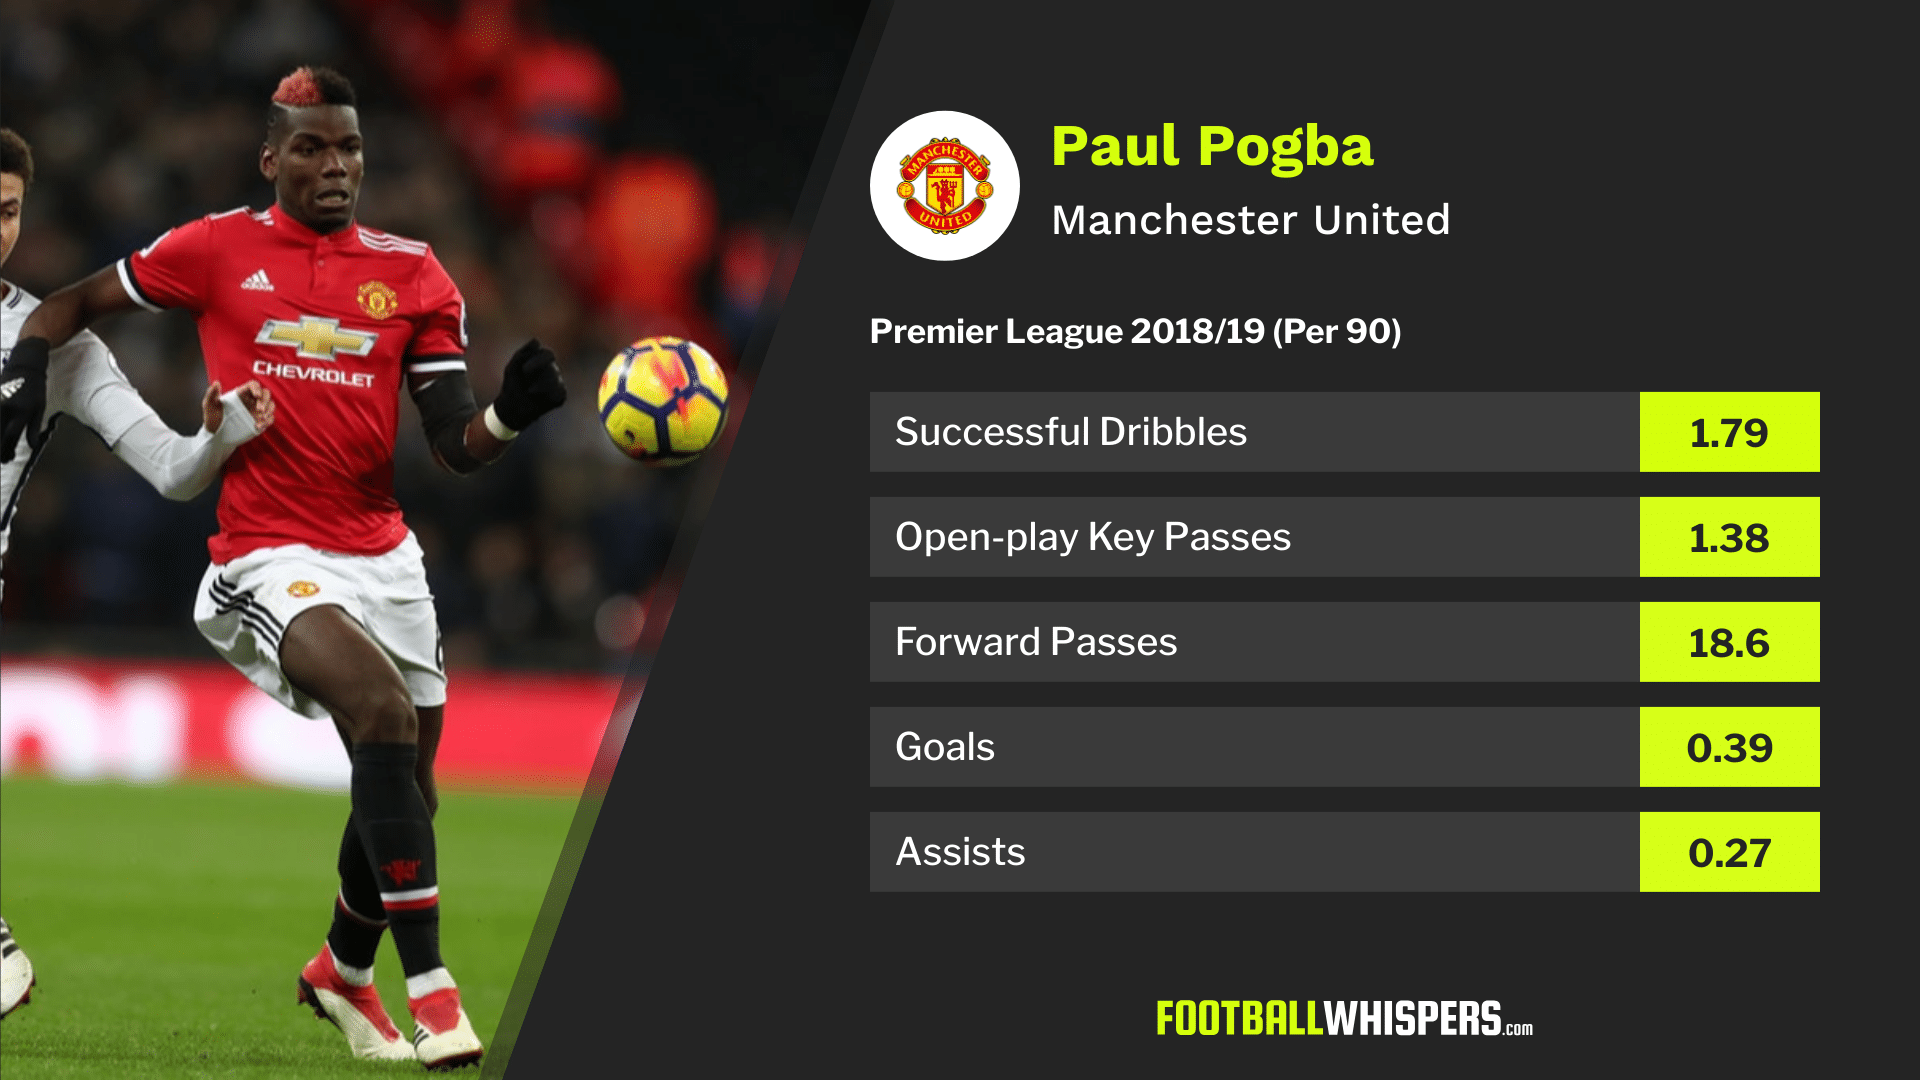 5 Players who can replace Paul Pogba at Manchester United